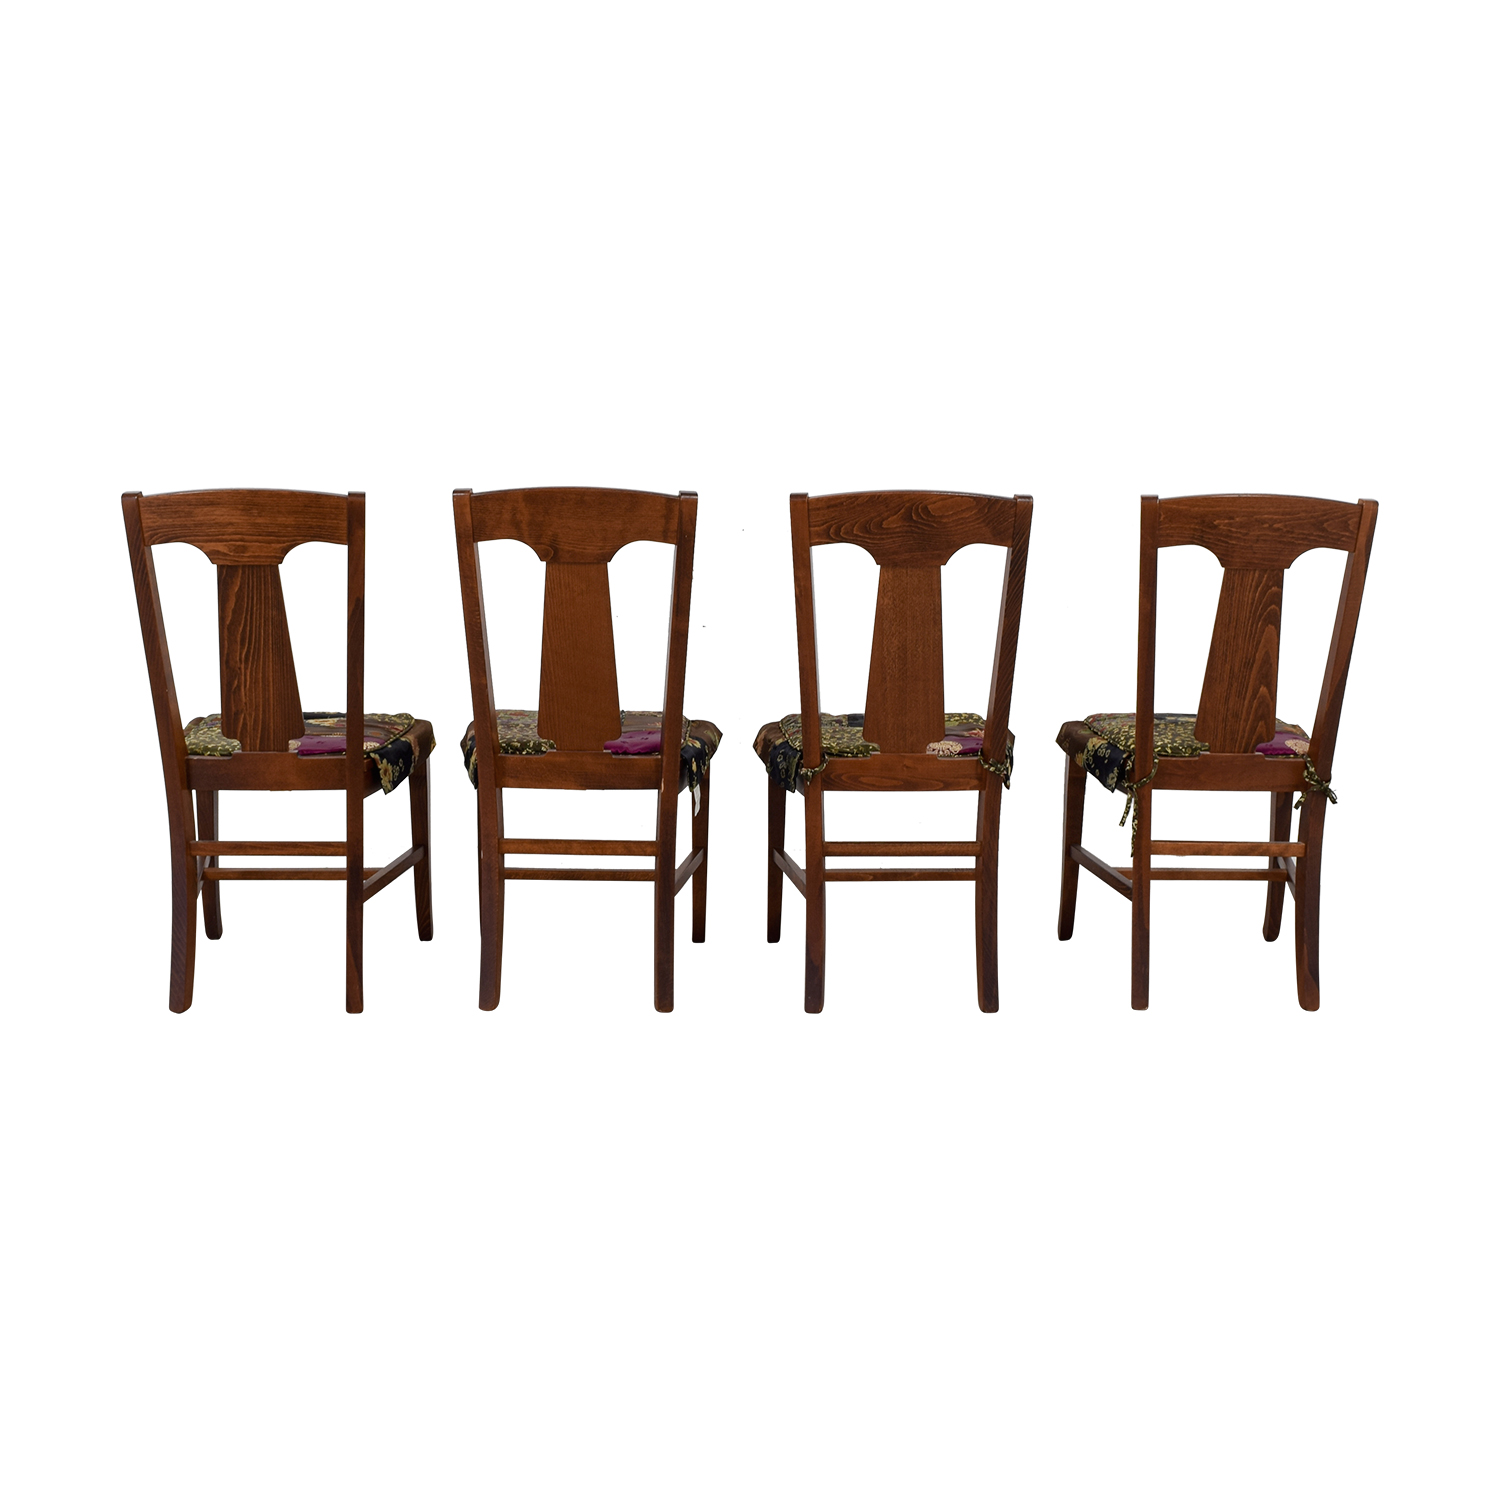 82% OFF   Pottery Barn Pottery Barn Loren Wood Dining Chairs With Fabric  Cushions / Chairs